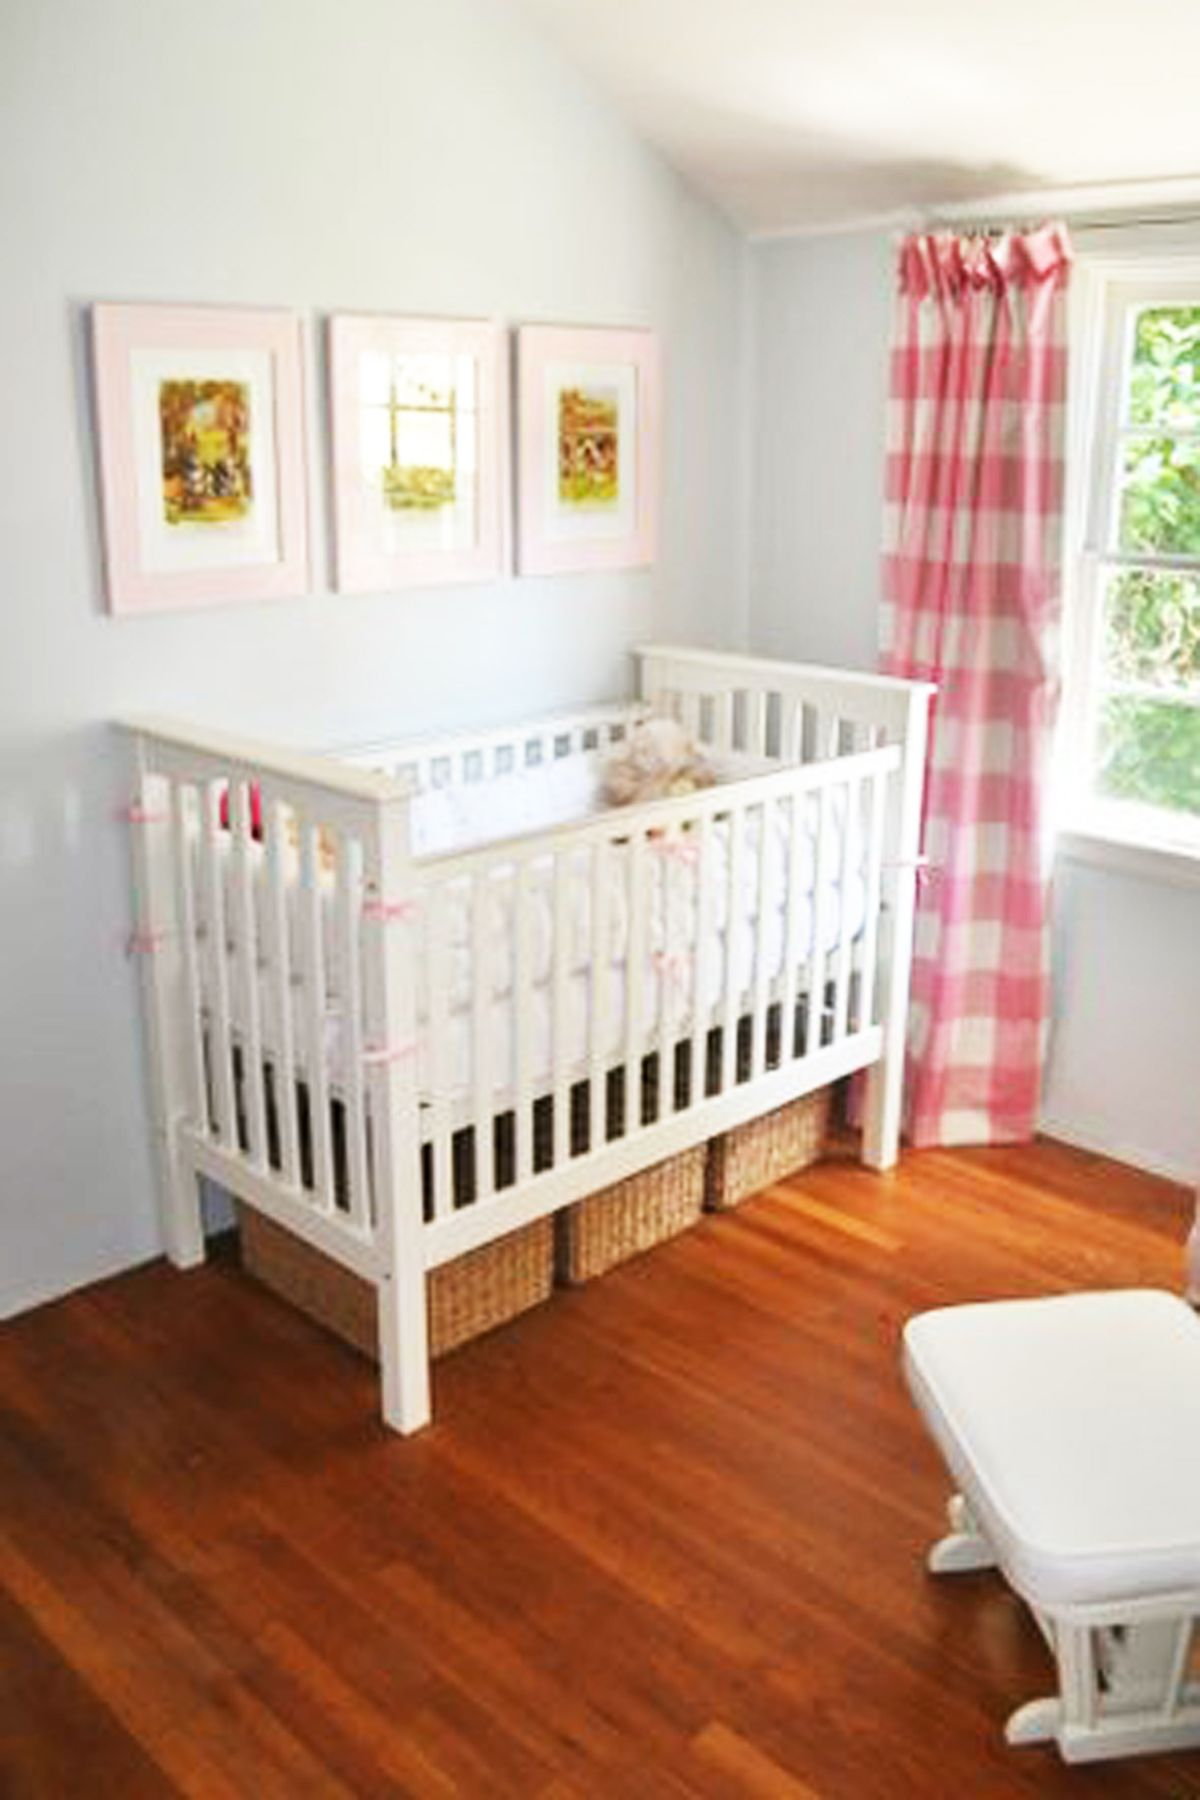 Nursery Baby Crib Diy Crib Storage Under Crib Storage